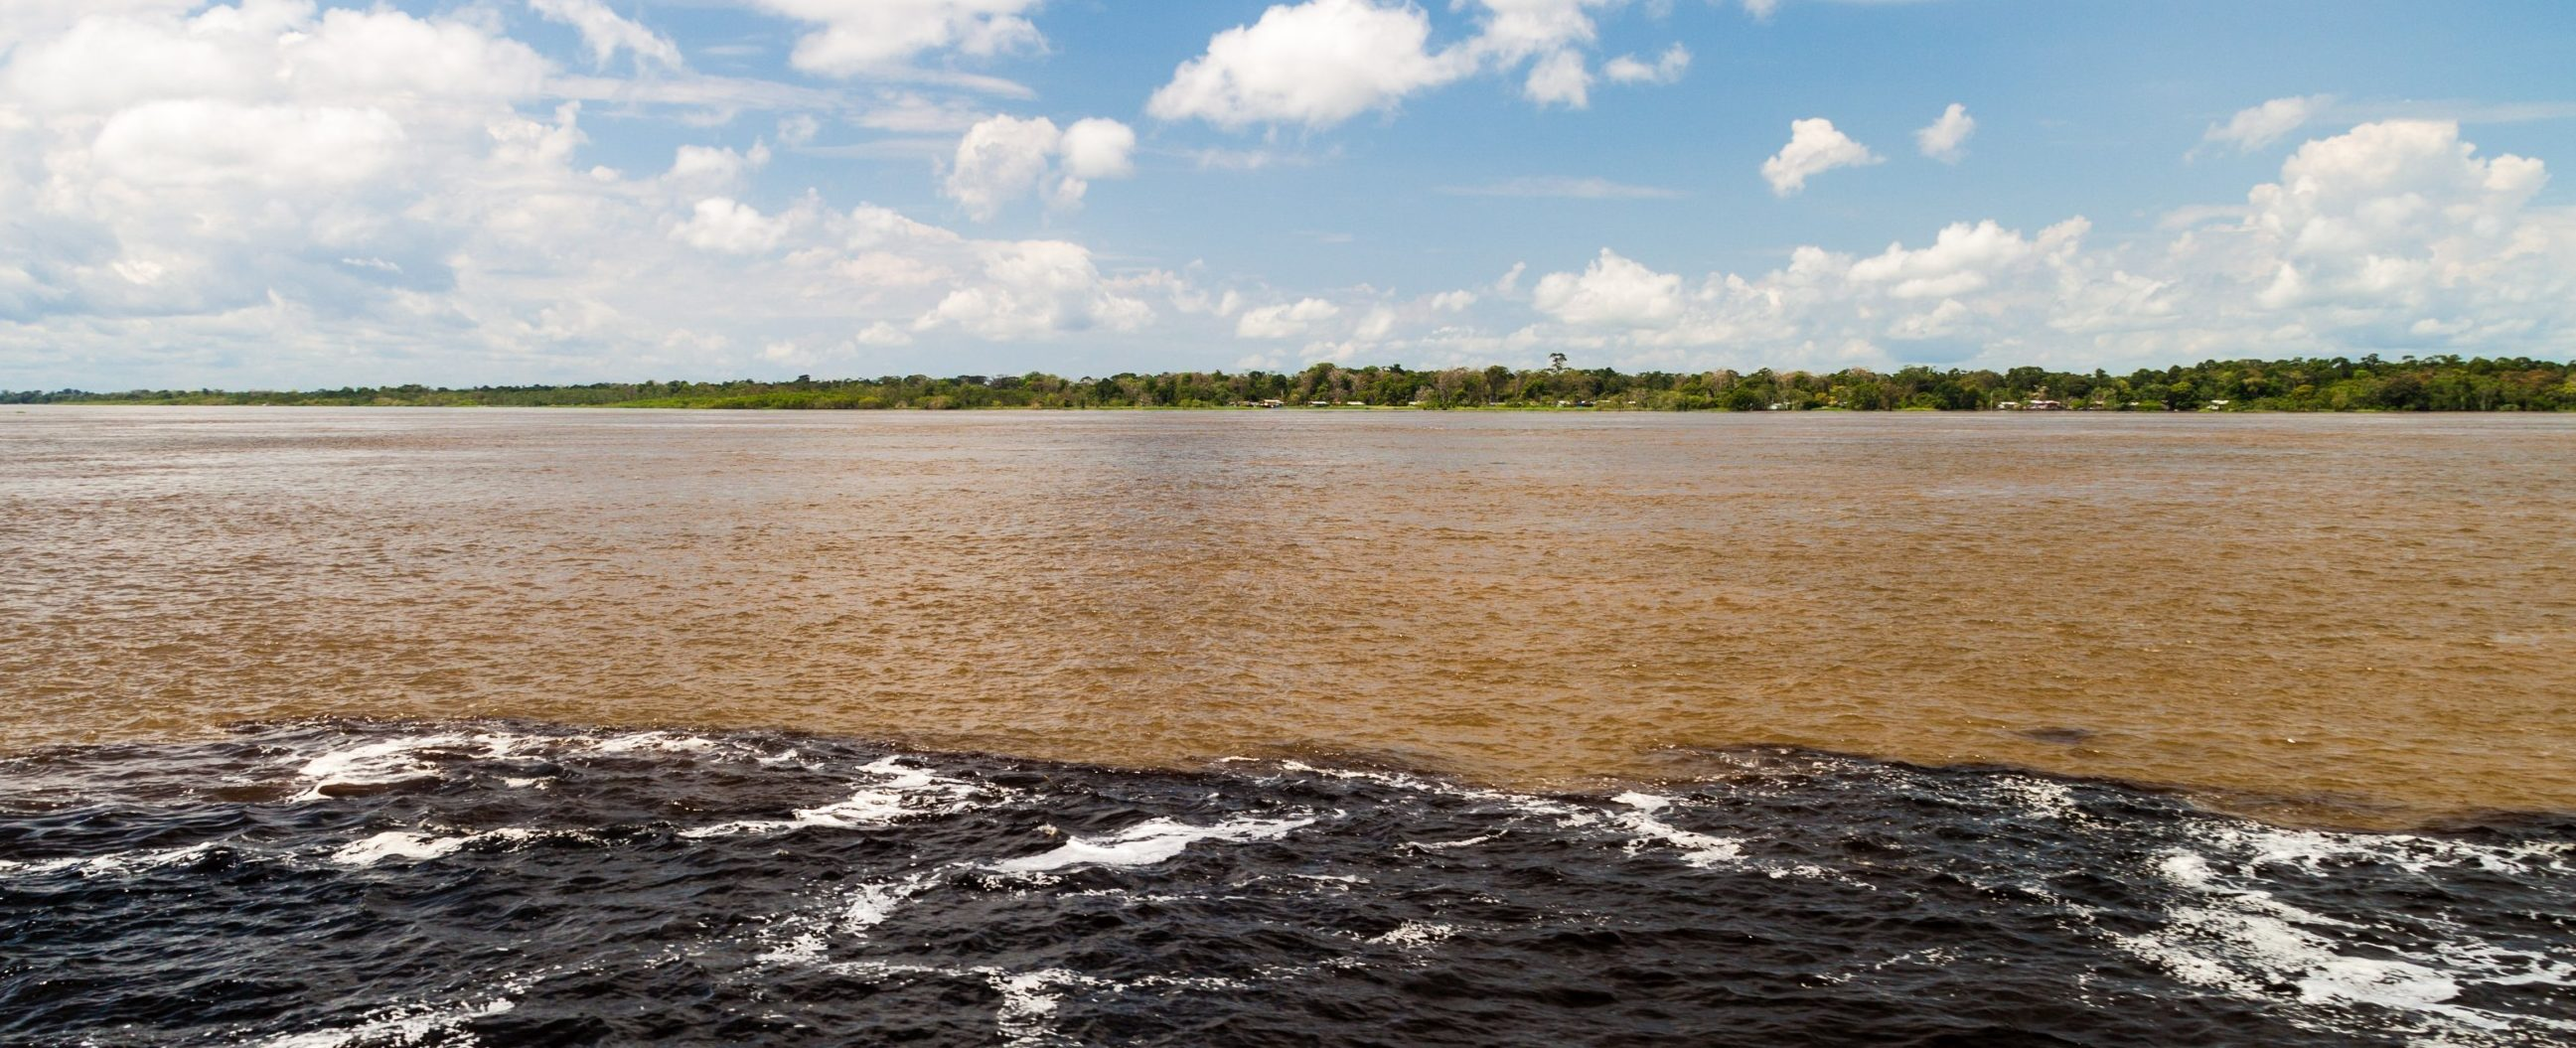 The mythical encounter of the waters, where the Solimoes and Rio Negro meet, but never mix.